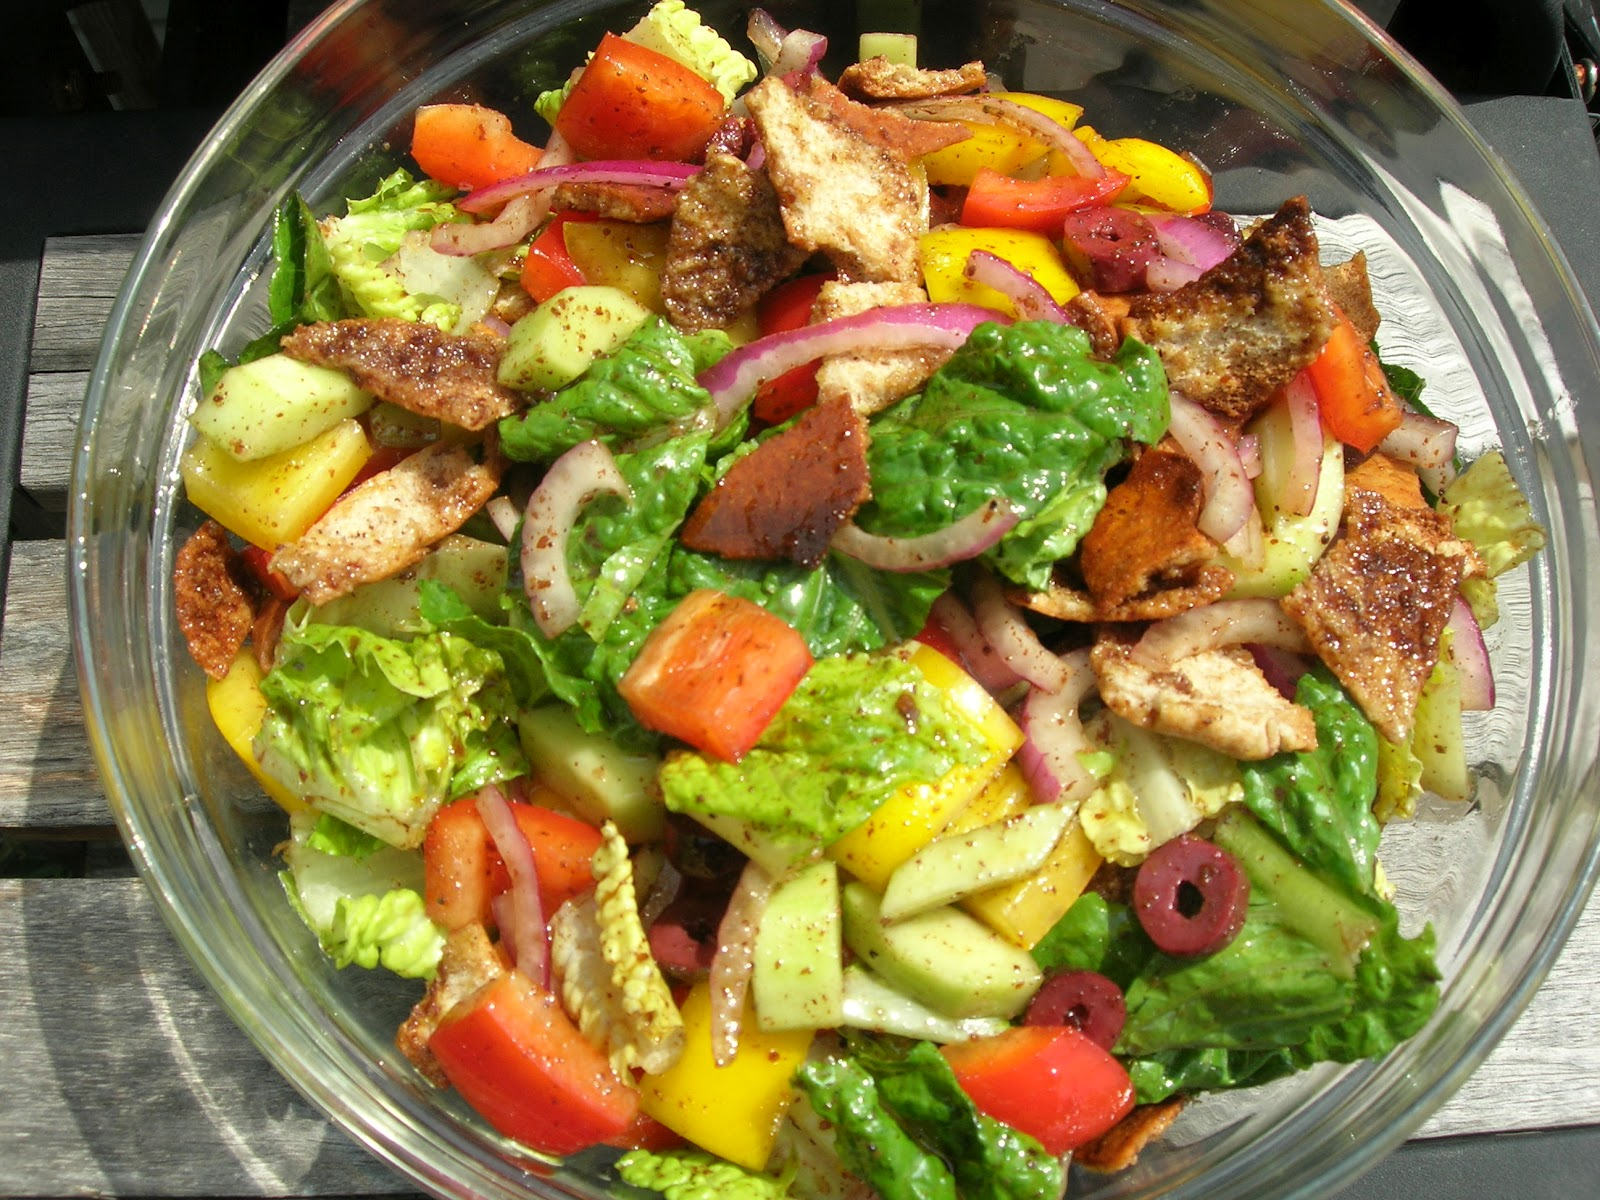 Vital Vegan: Fattoush Salad with Lemon Balsamic Dressing